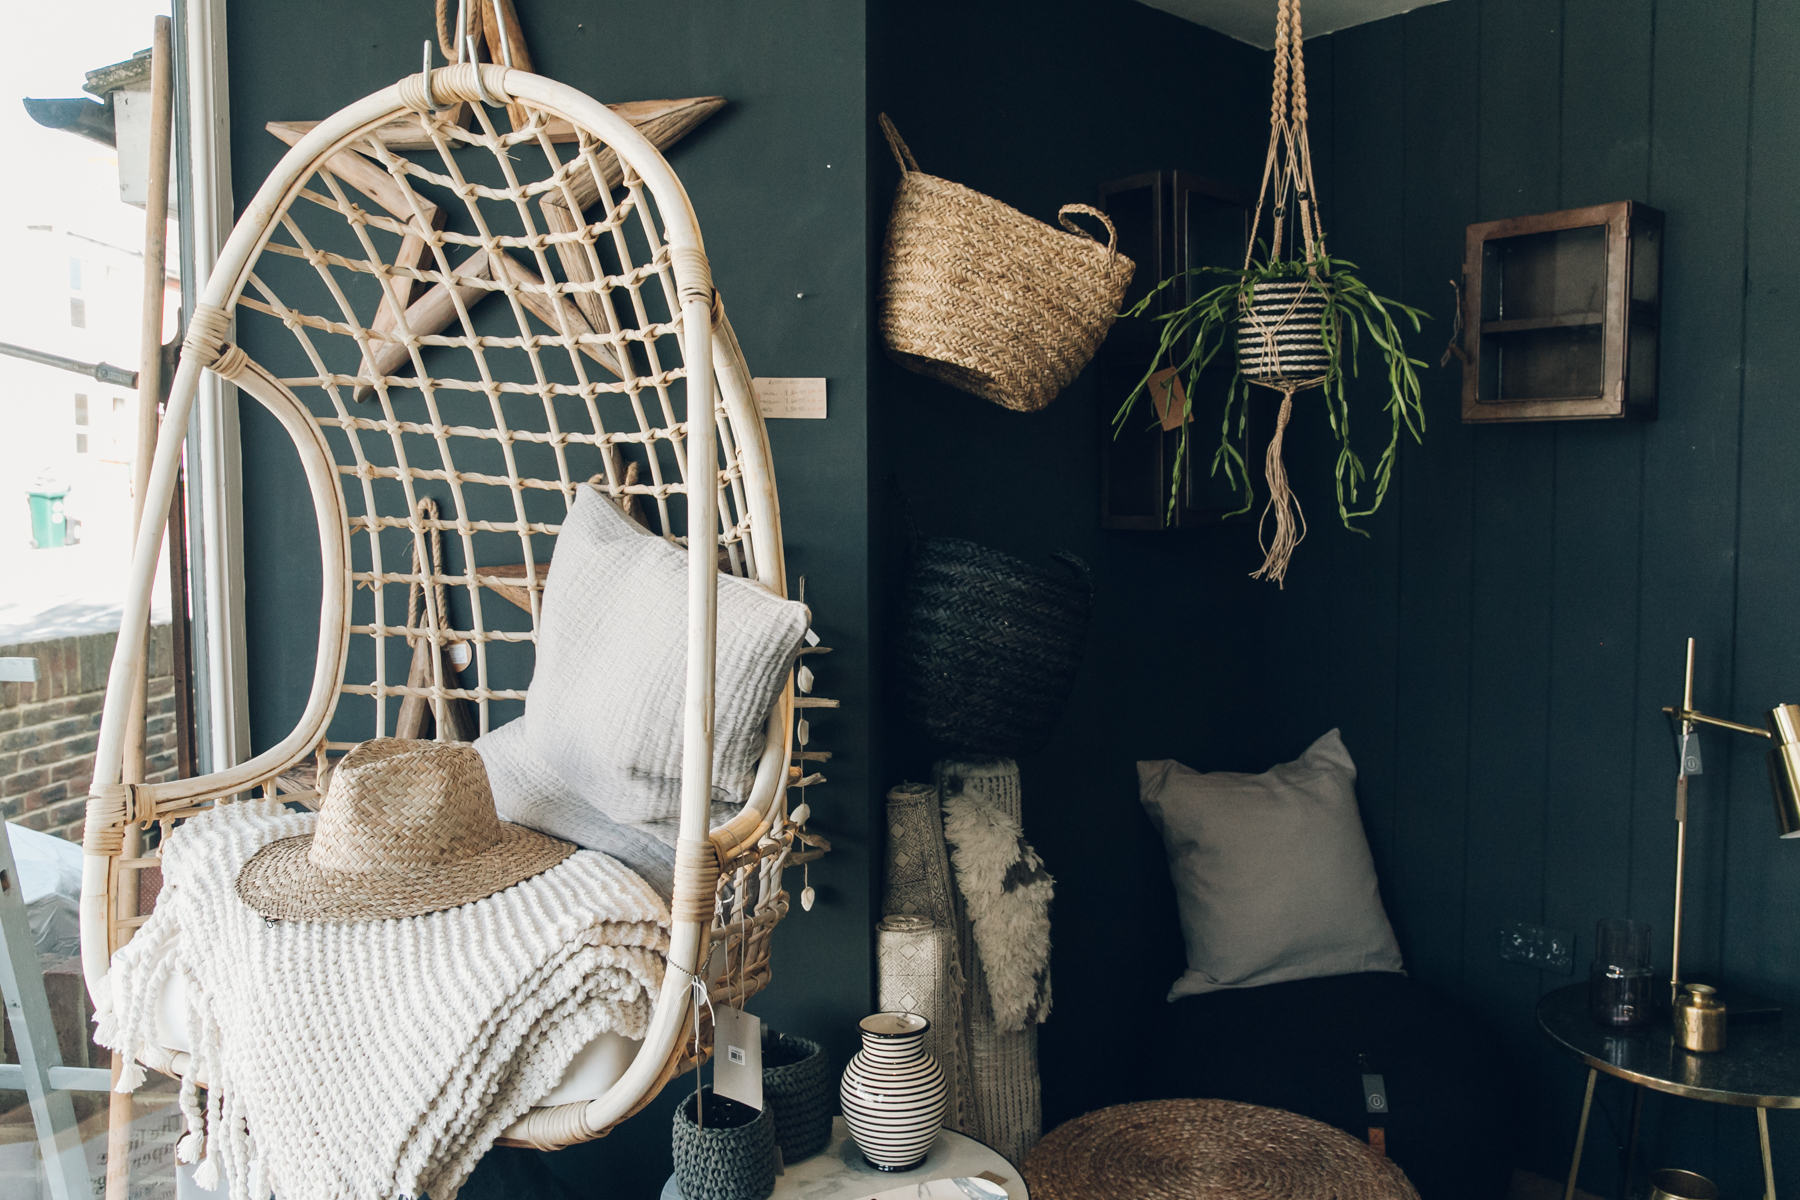 Hanging wicker chair suspended in an independent shop